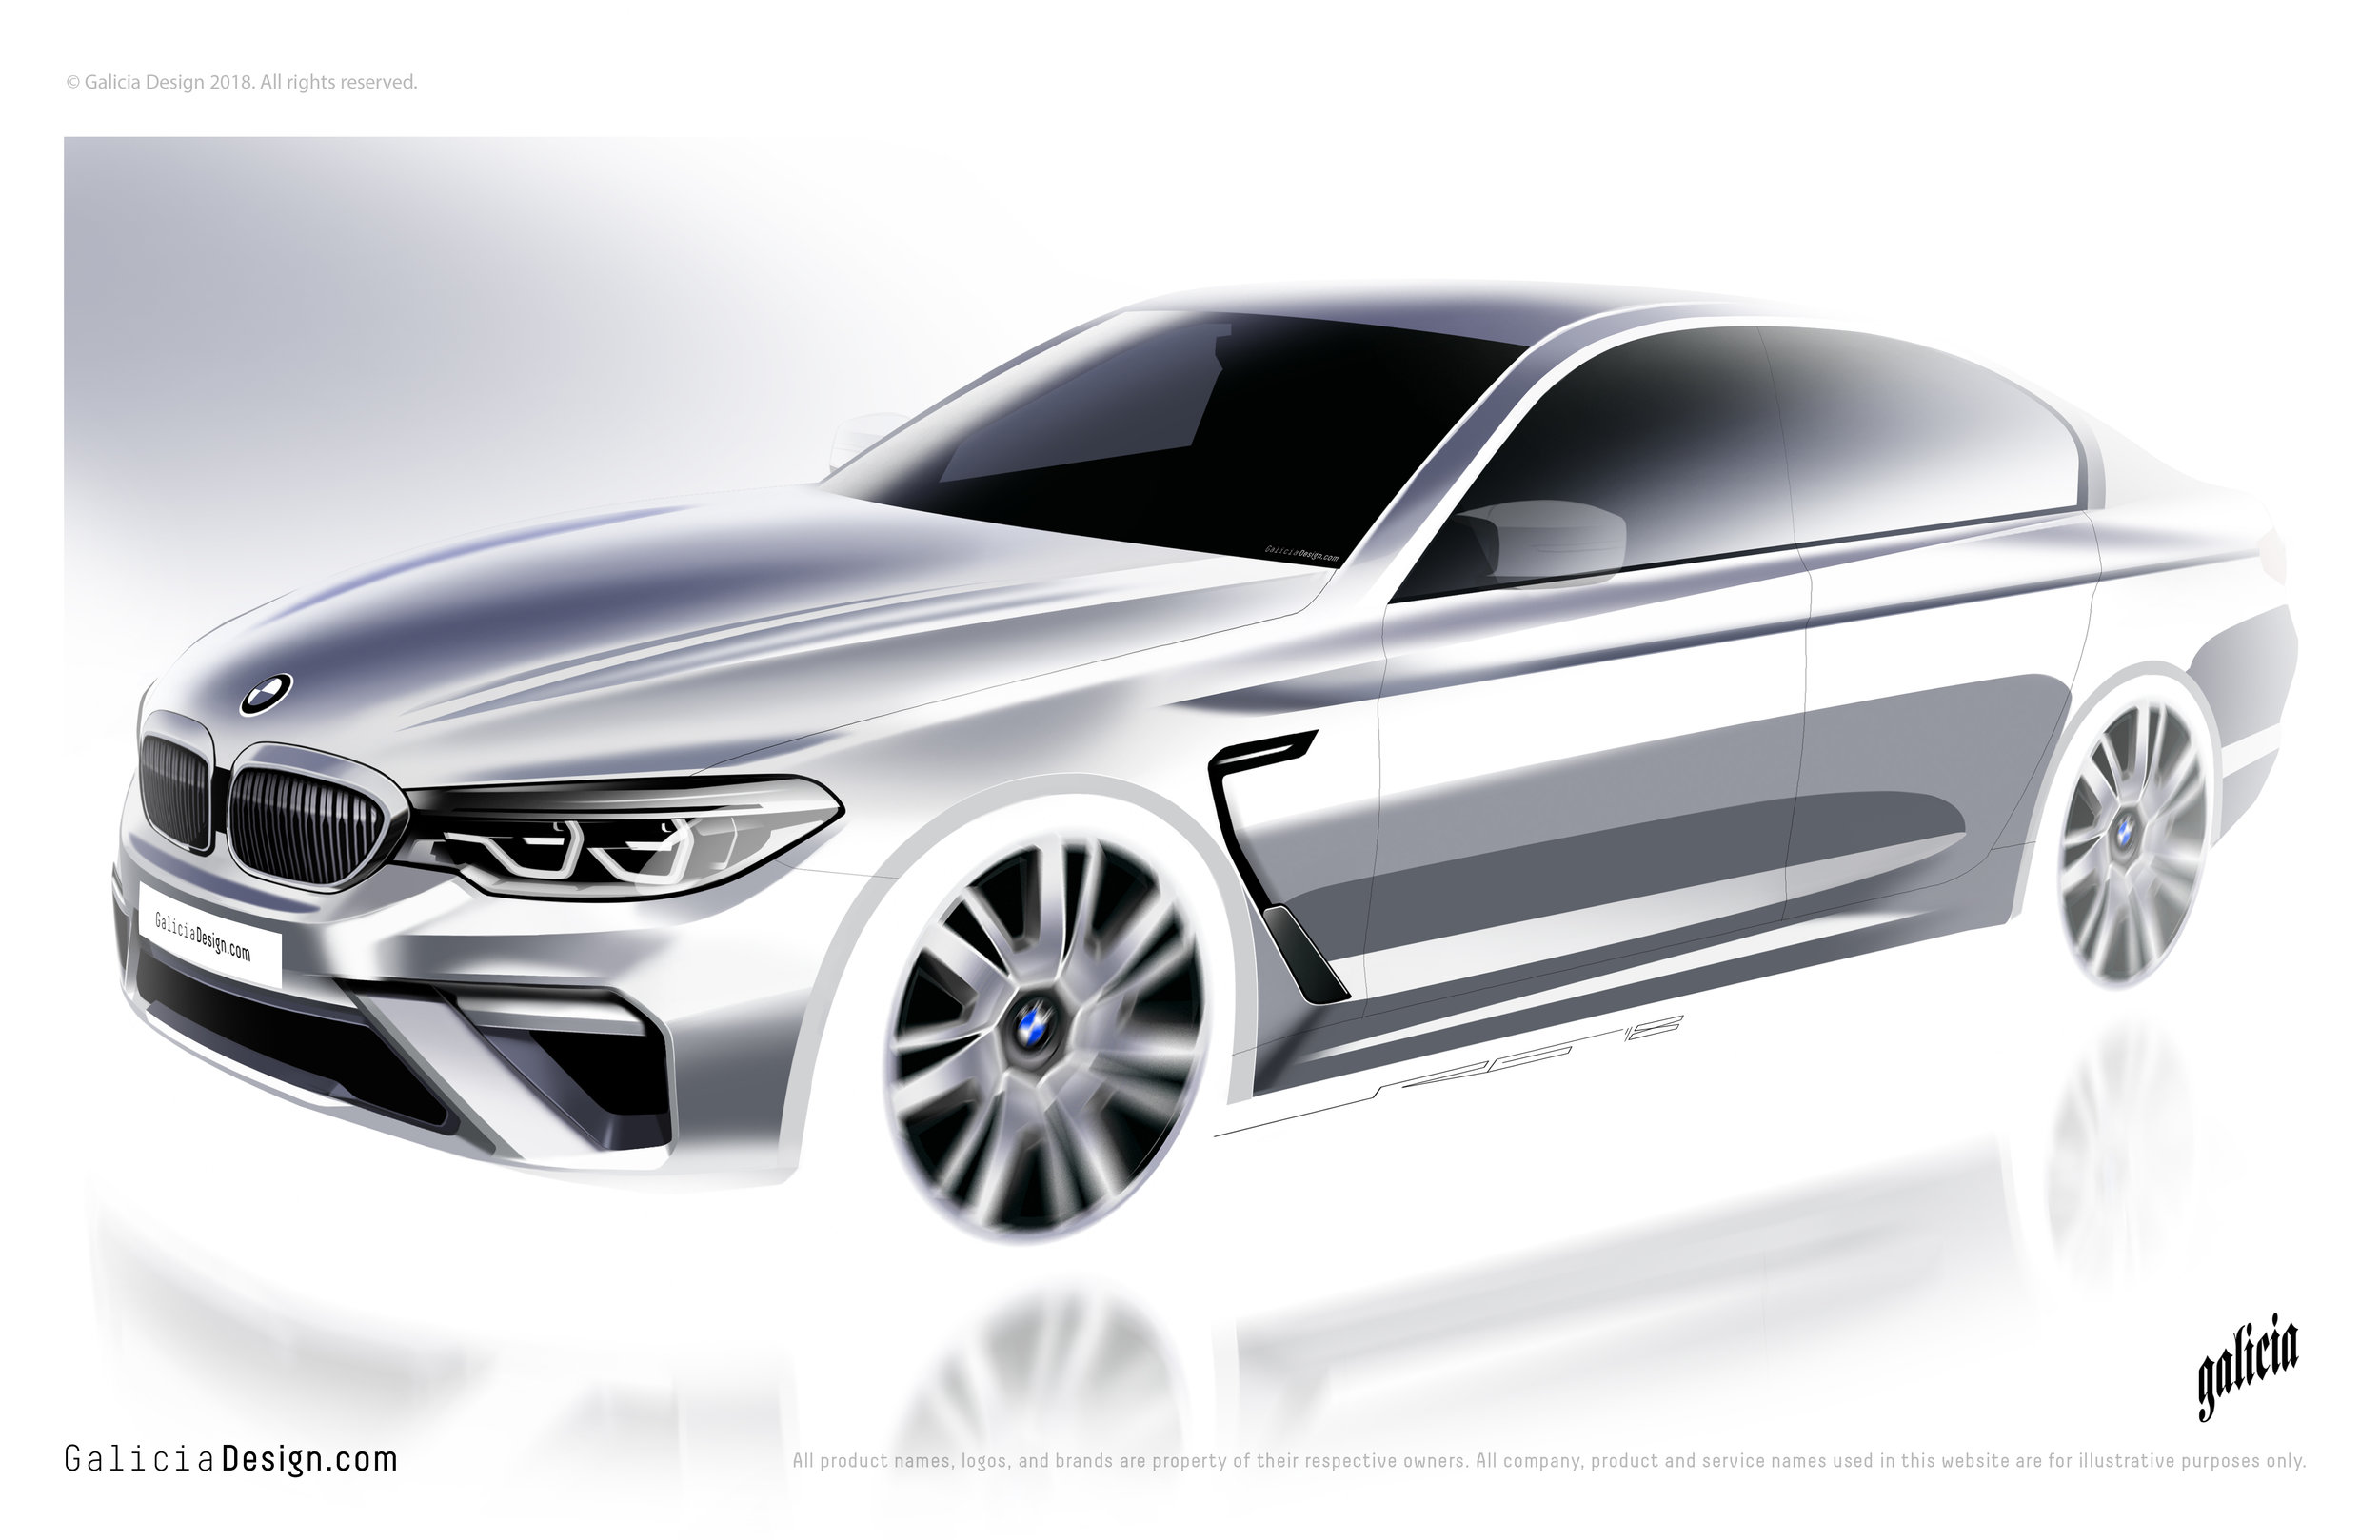 bmw 5 side view - galiciadesign_com.jpg